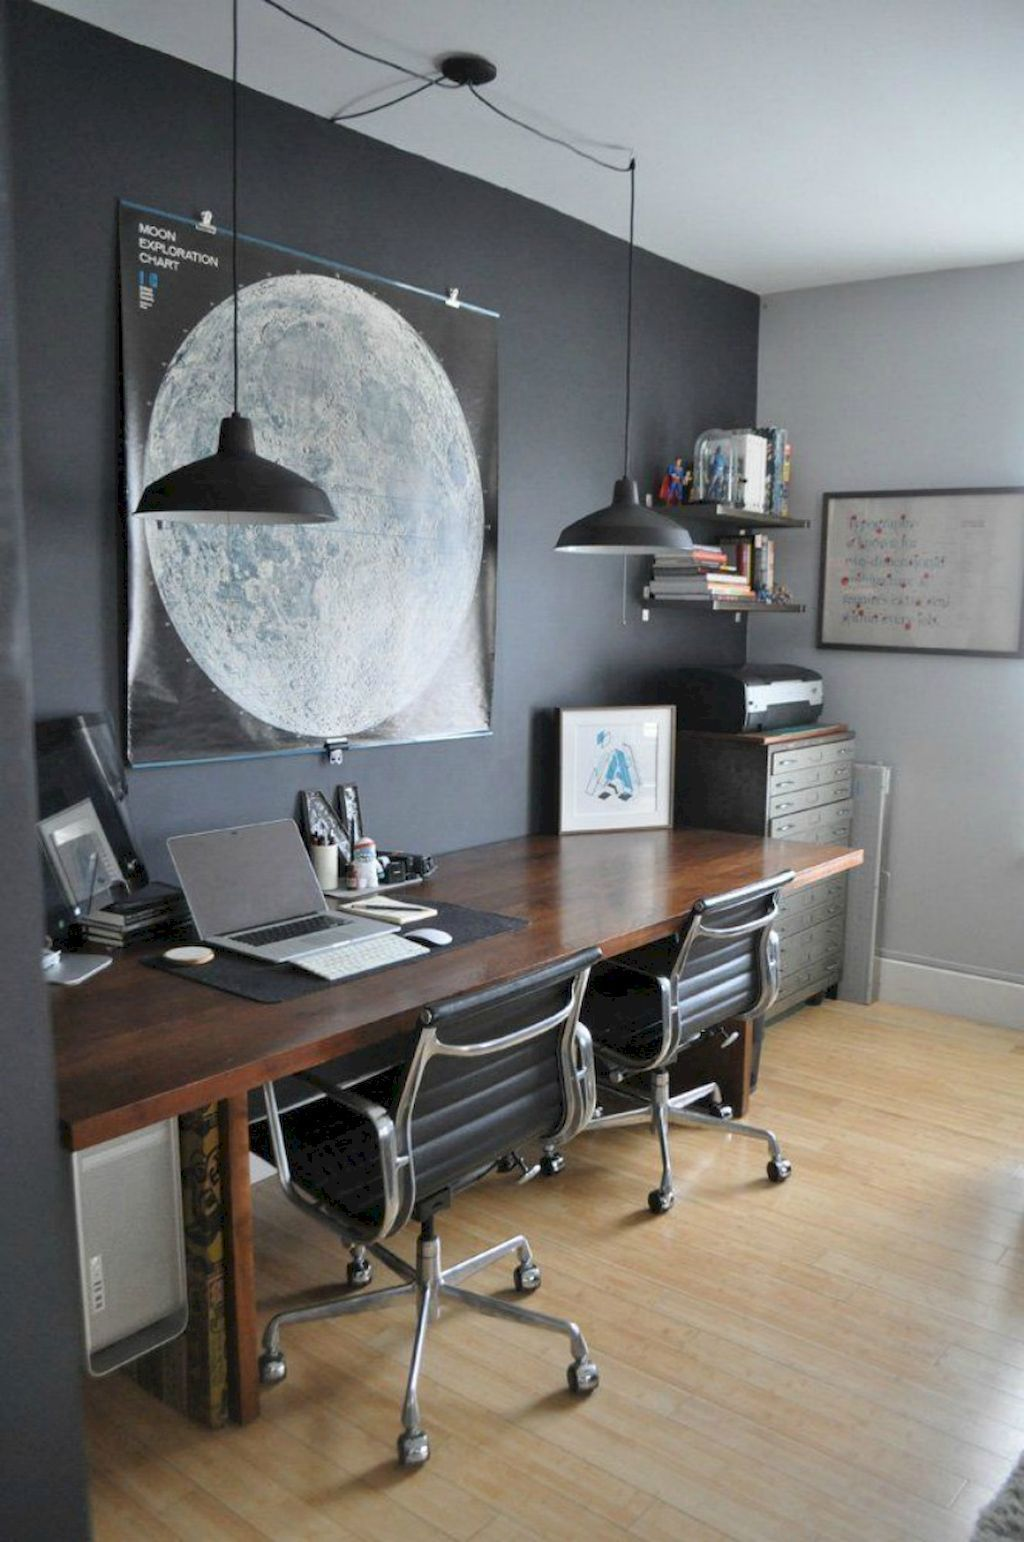 Pin By Luis On Room Ideas Home Office Design Home Office Space